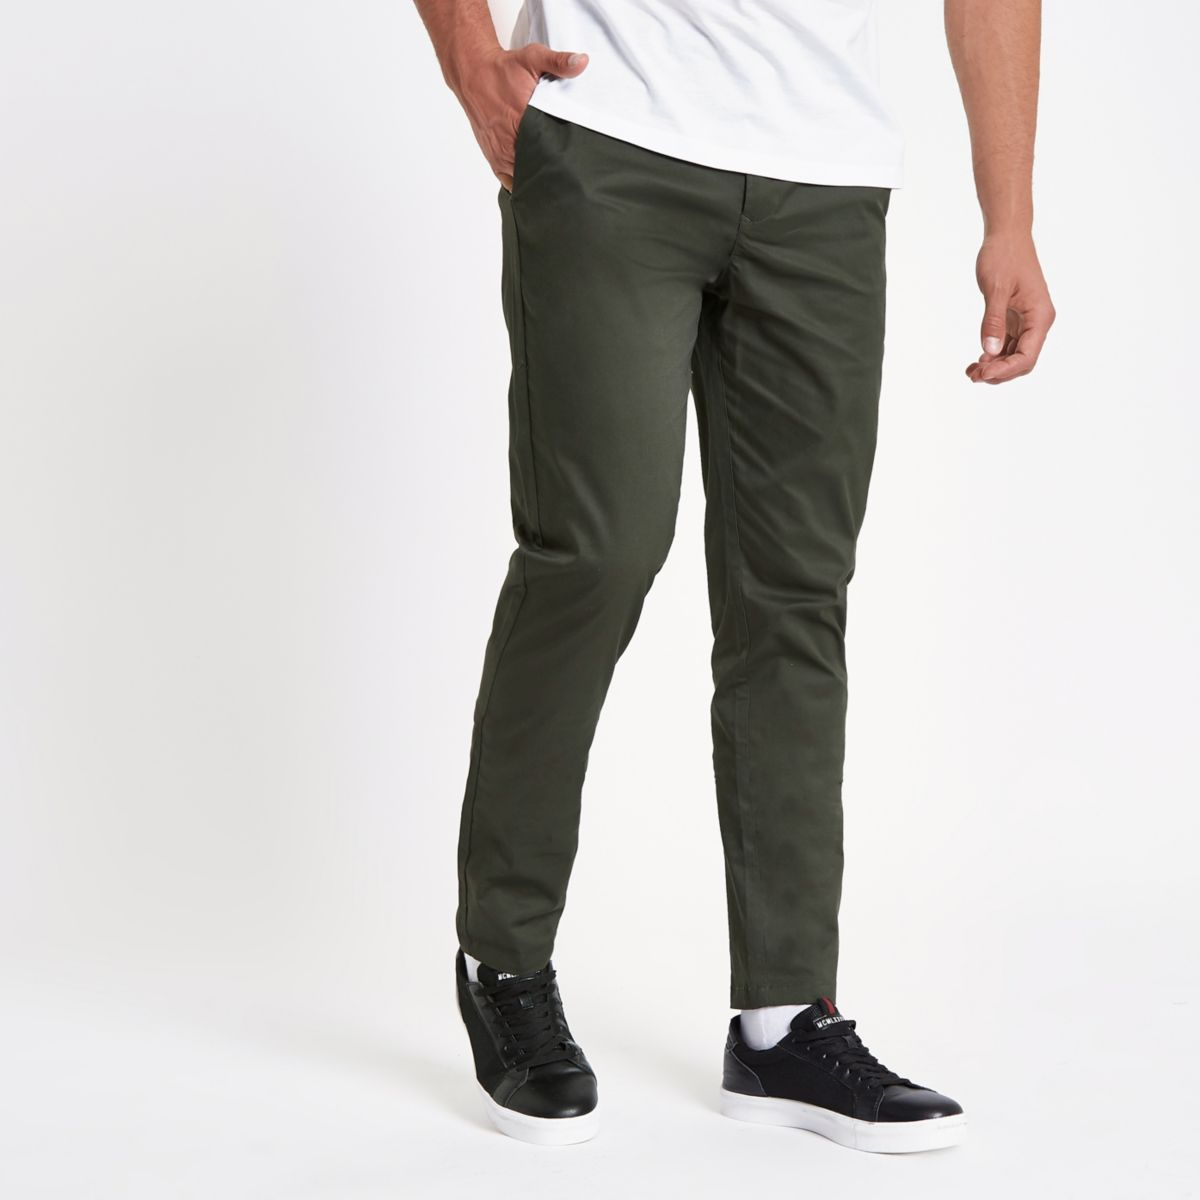 Khaki slim fit chino pants